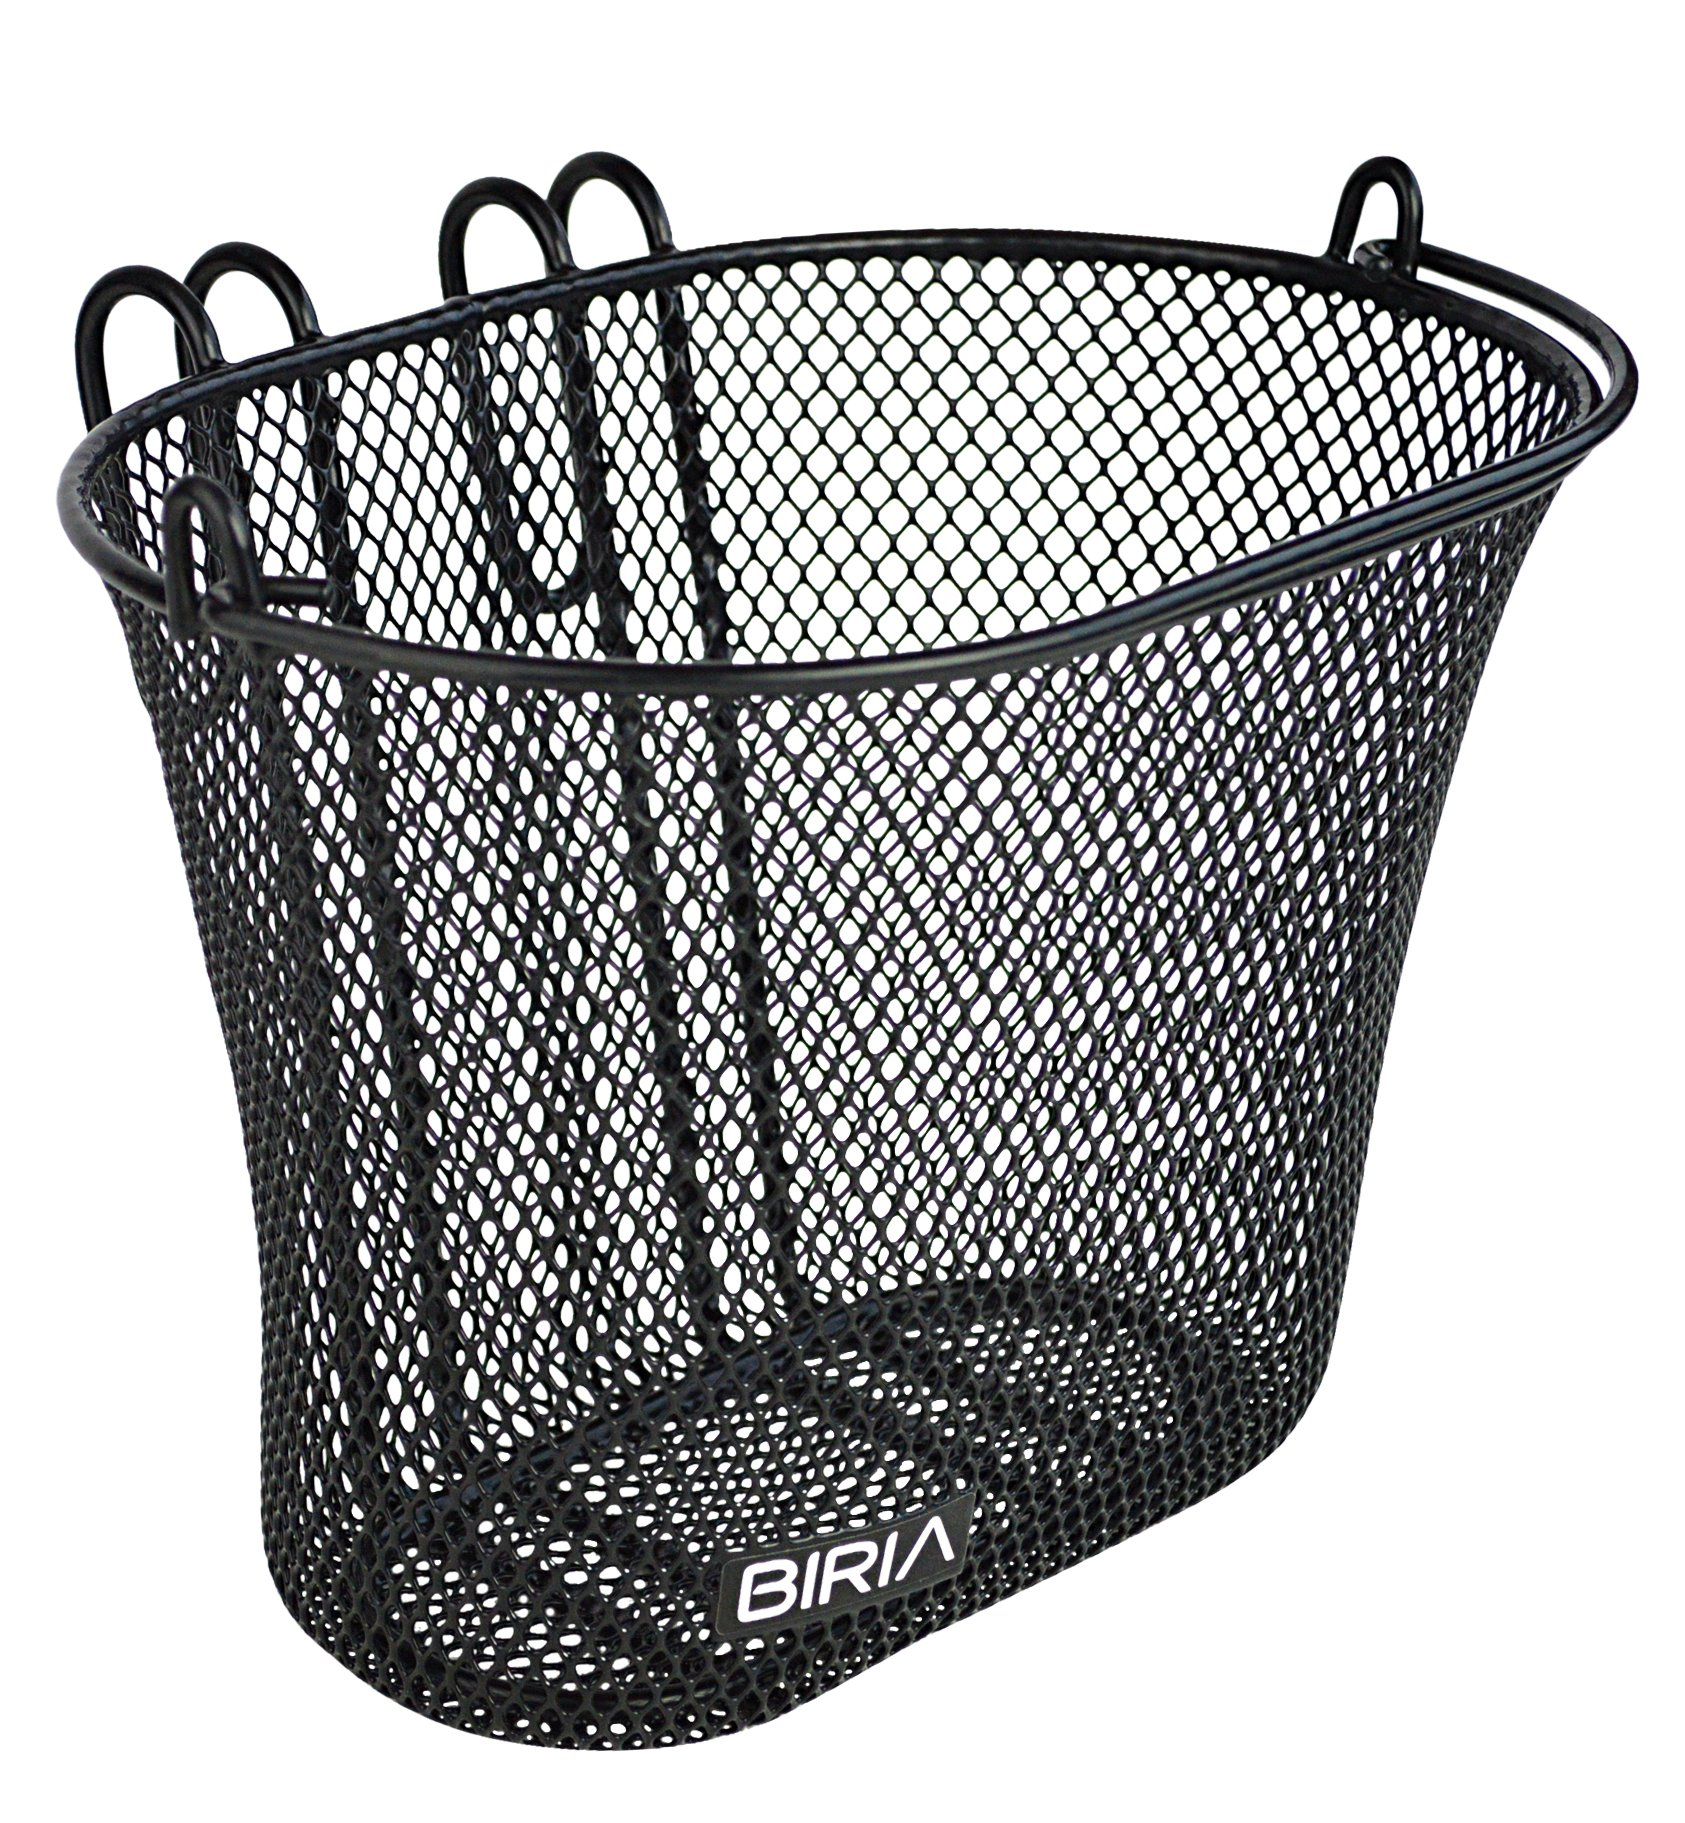 Biria Basket with hooks BLACK, Front, Removable, wire mesh SMALL, kids Bicycle basket, BLACK by